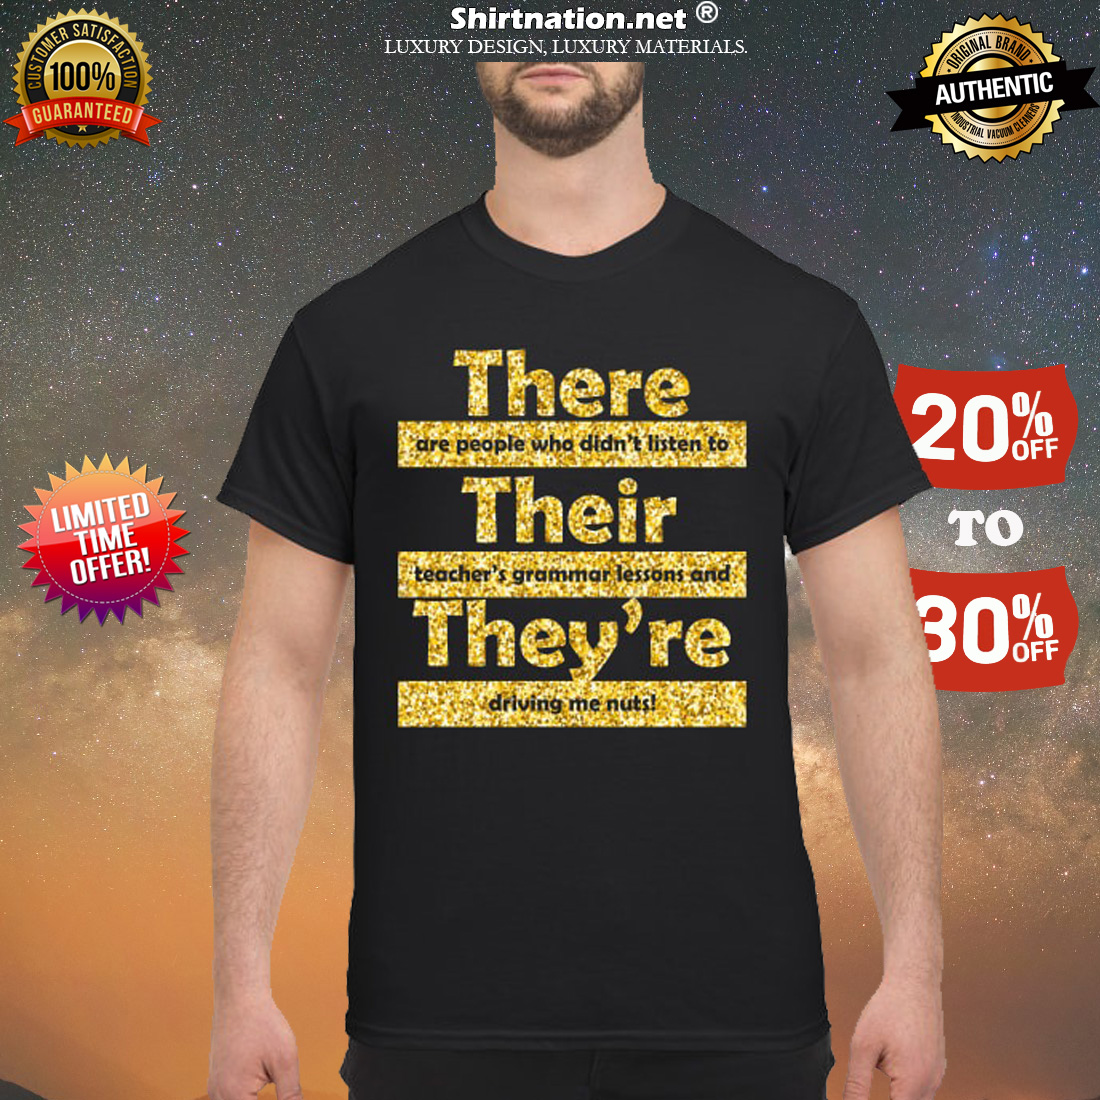 They are people who didn't listen to their teacher's grammar lessons and they're driving me nuts shirt